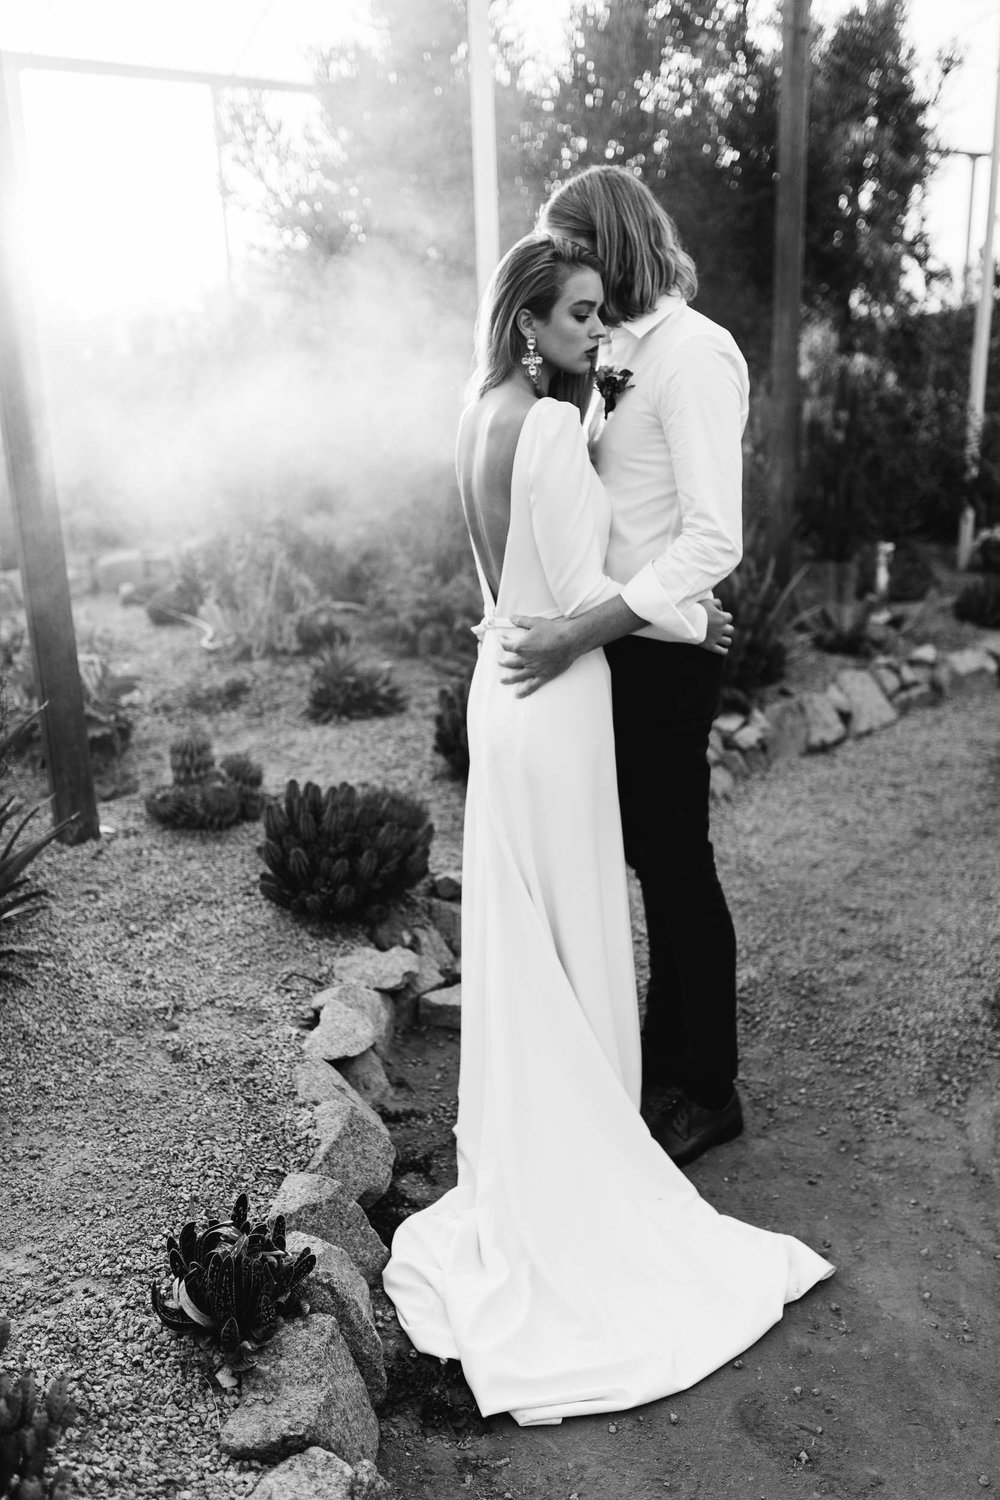 Kas-Richards-Ruby-and-James-Stylist-Cactus-Country-Karen-Willis-Holmes-Bridal-One-Heart-Studios-Boho-Wedding-138.jpg